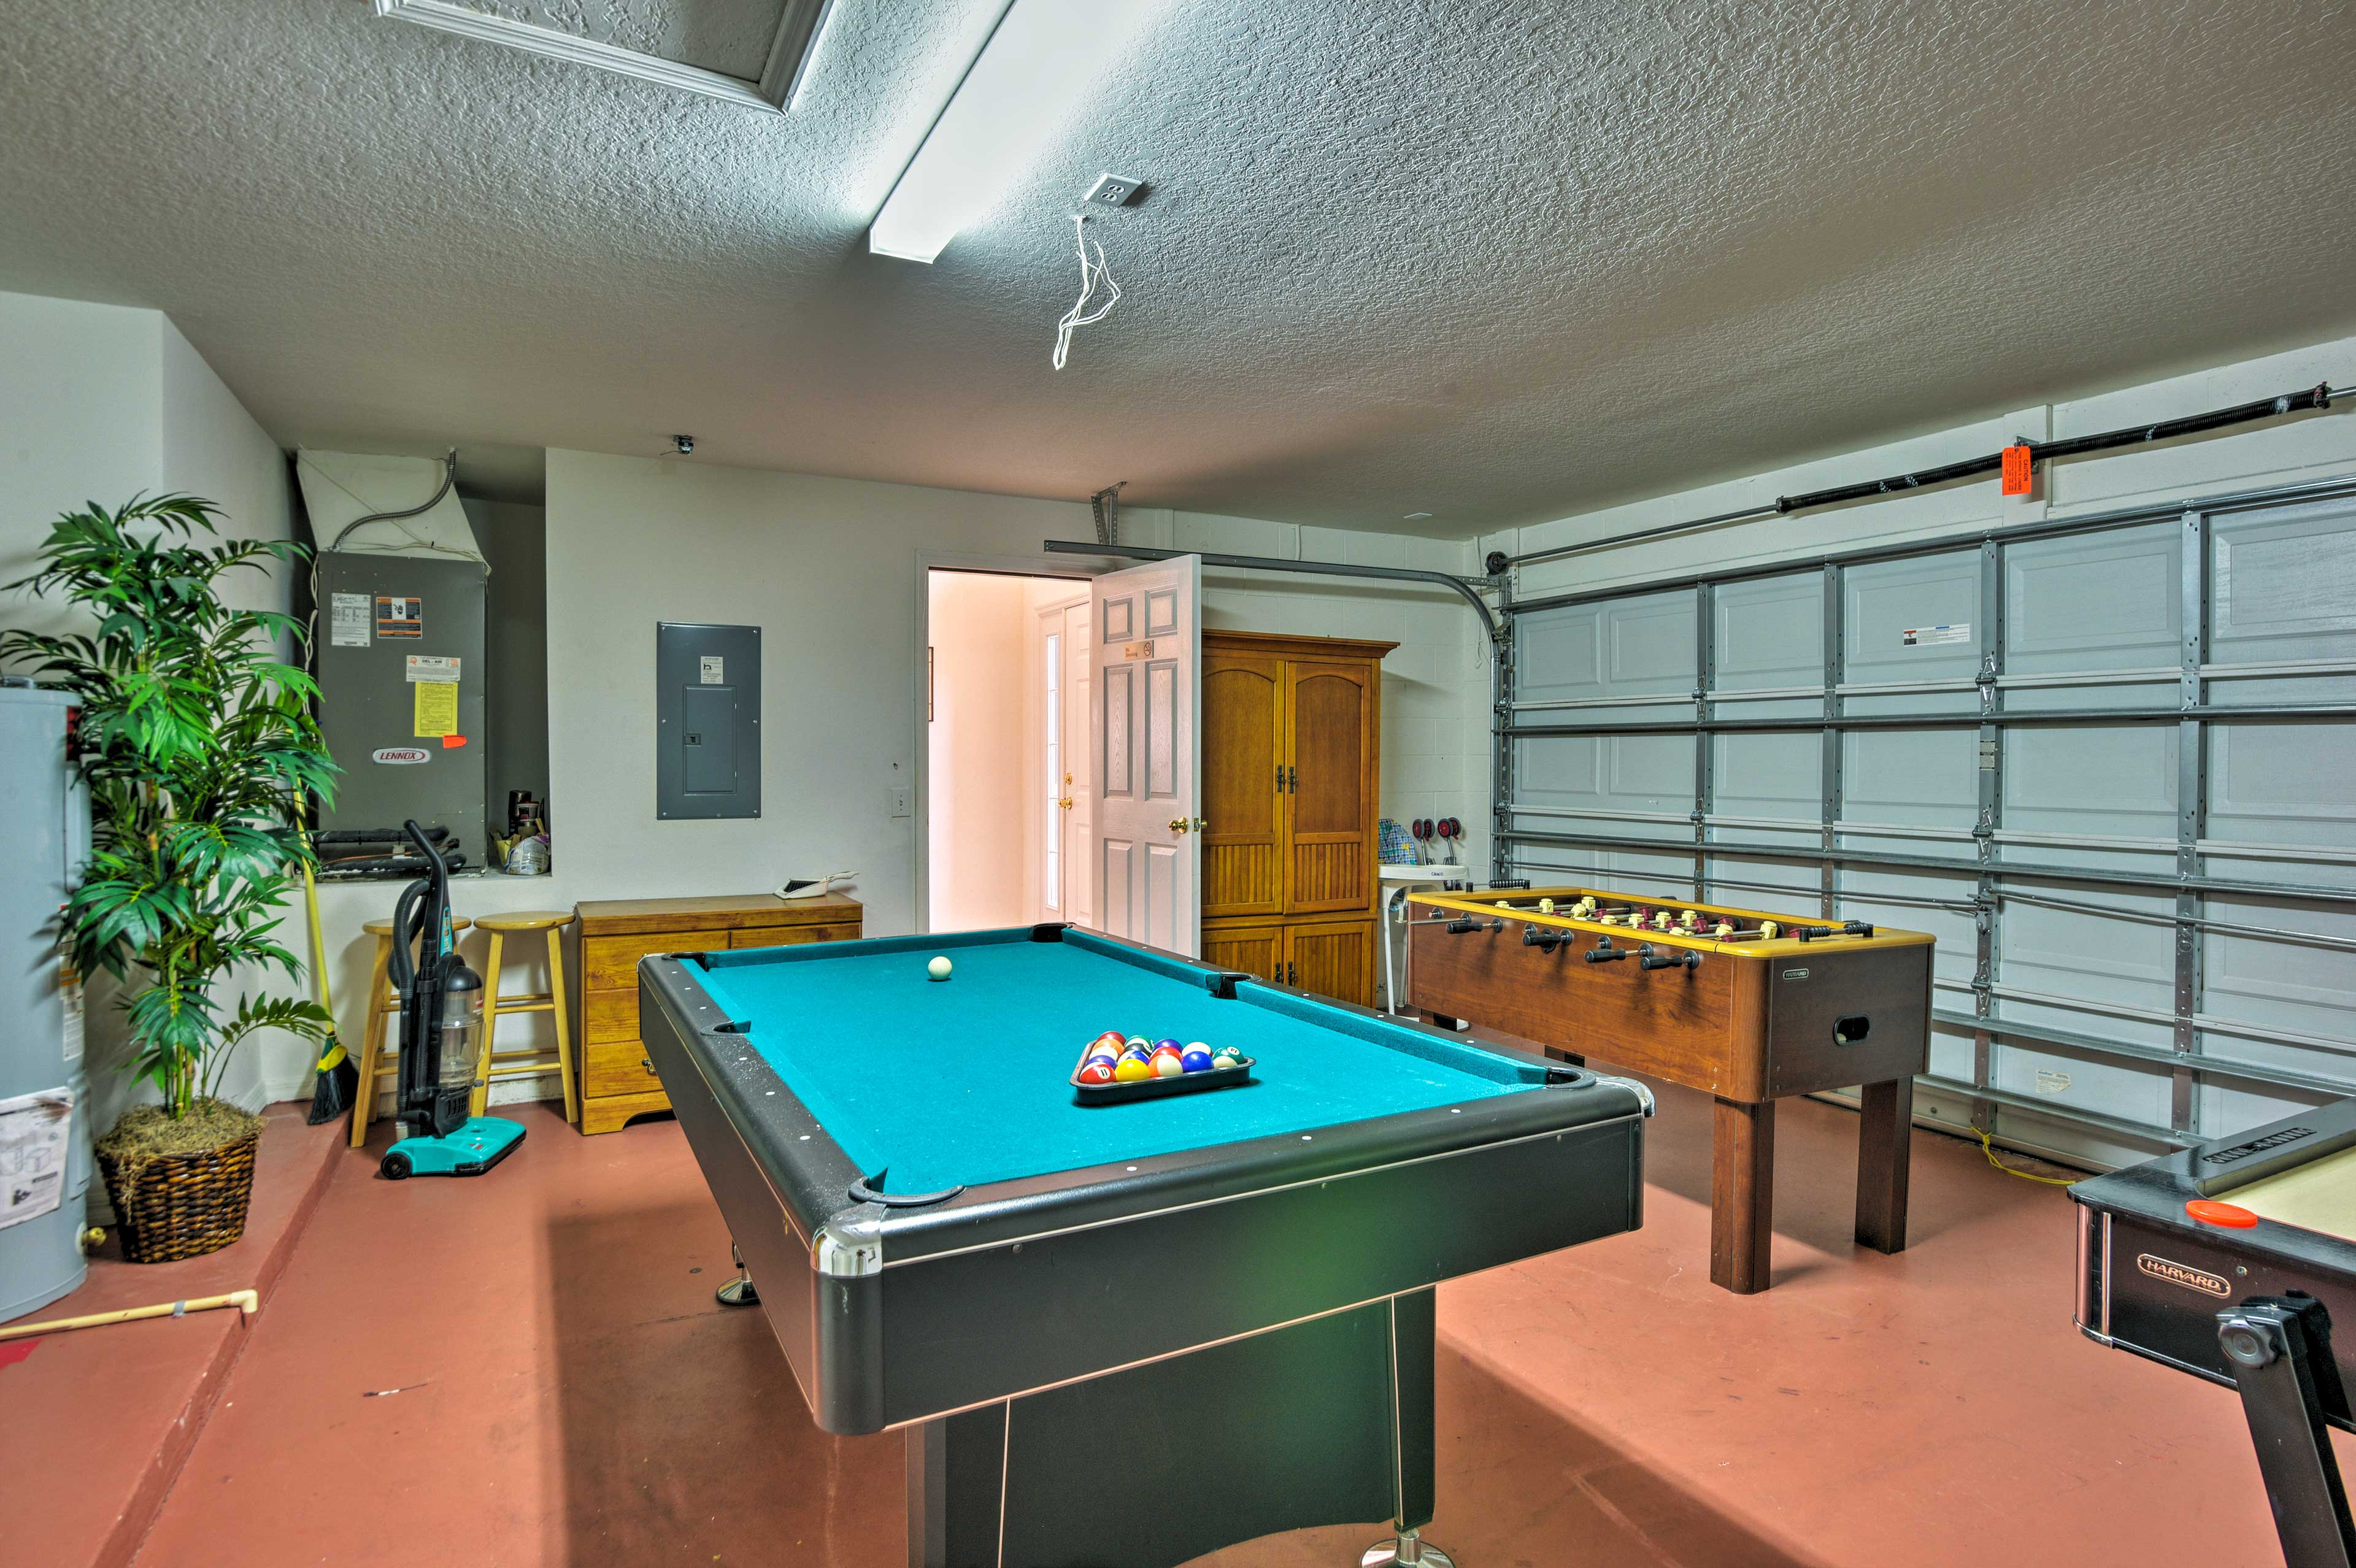 Rack 'em up and play a game of pool!